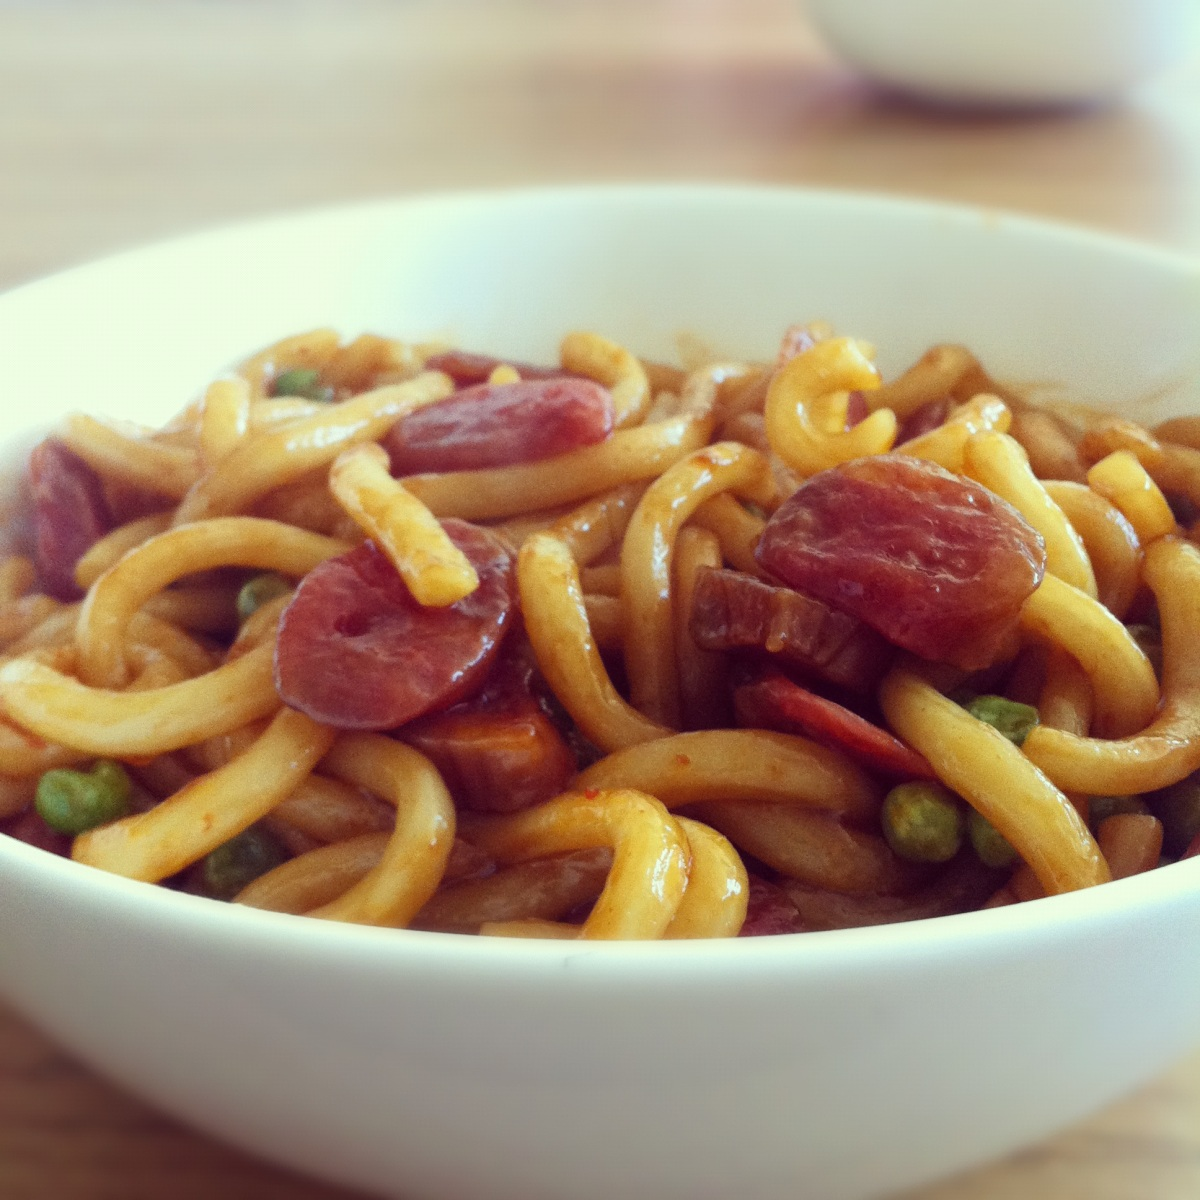 Lup cheong (Chinese sausage) with noodles